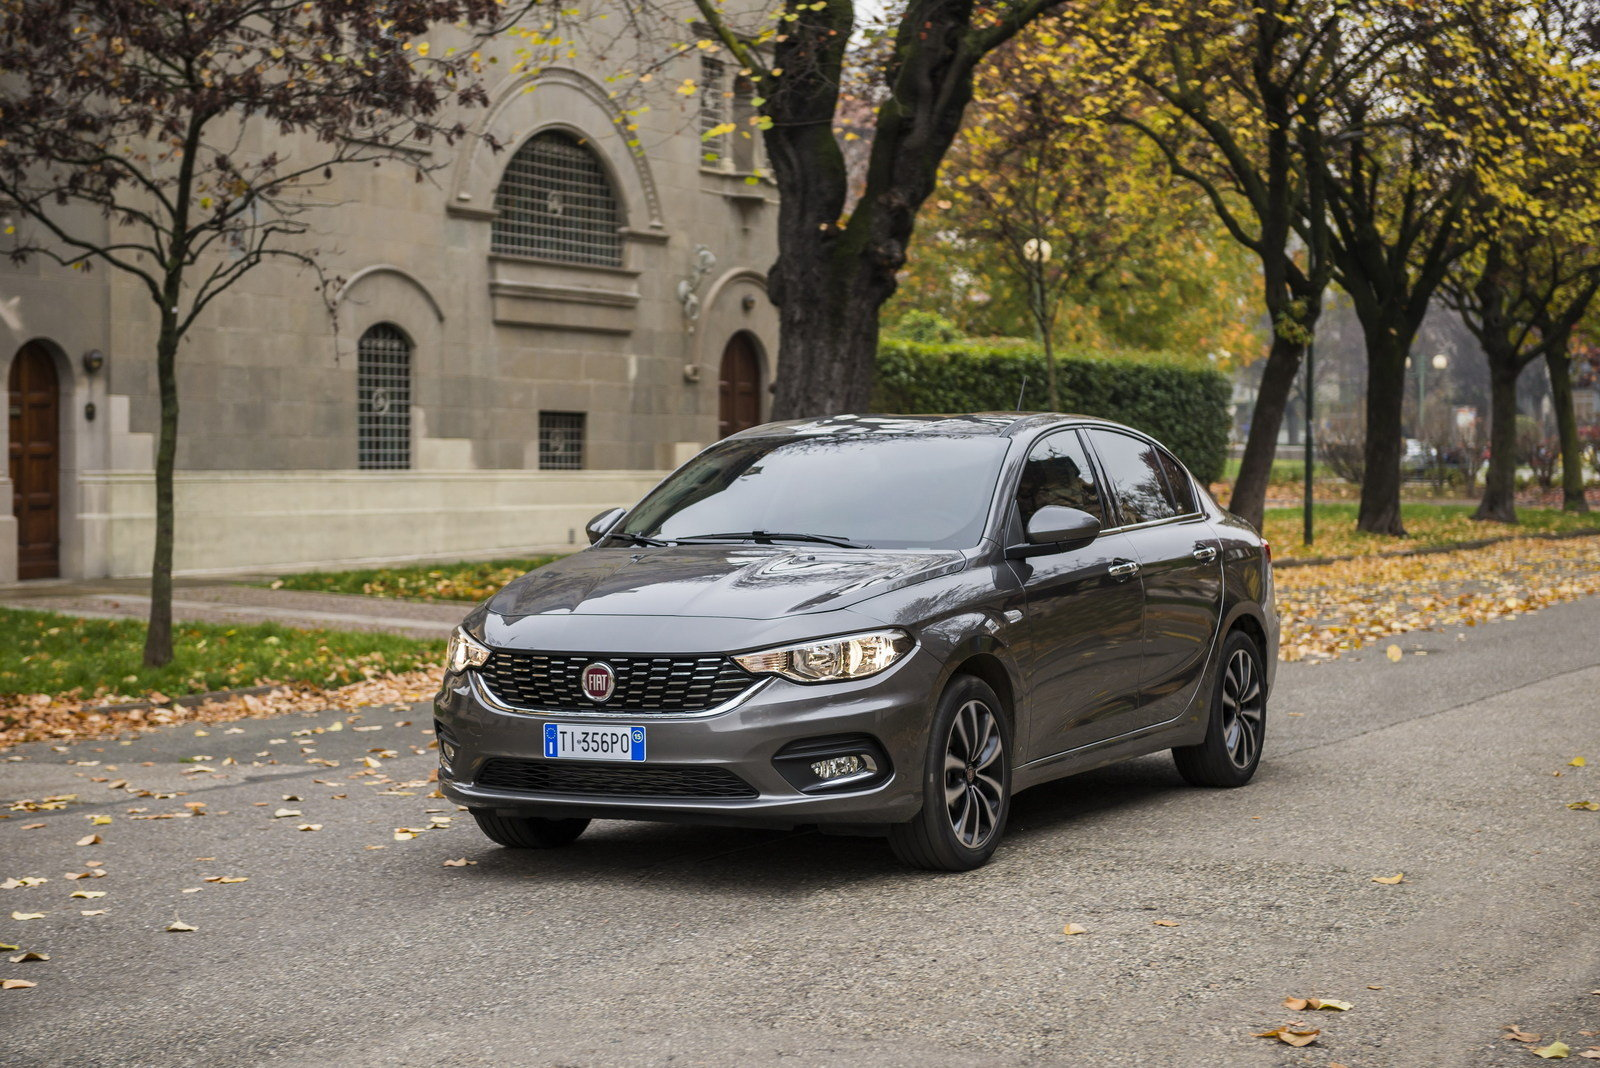 2017 fiat tipo picture 657830 car review top speed. Black Bedroom Furniture Sets. Home Design Ideas